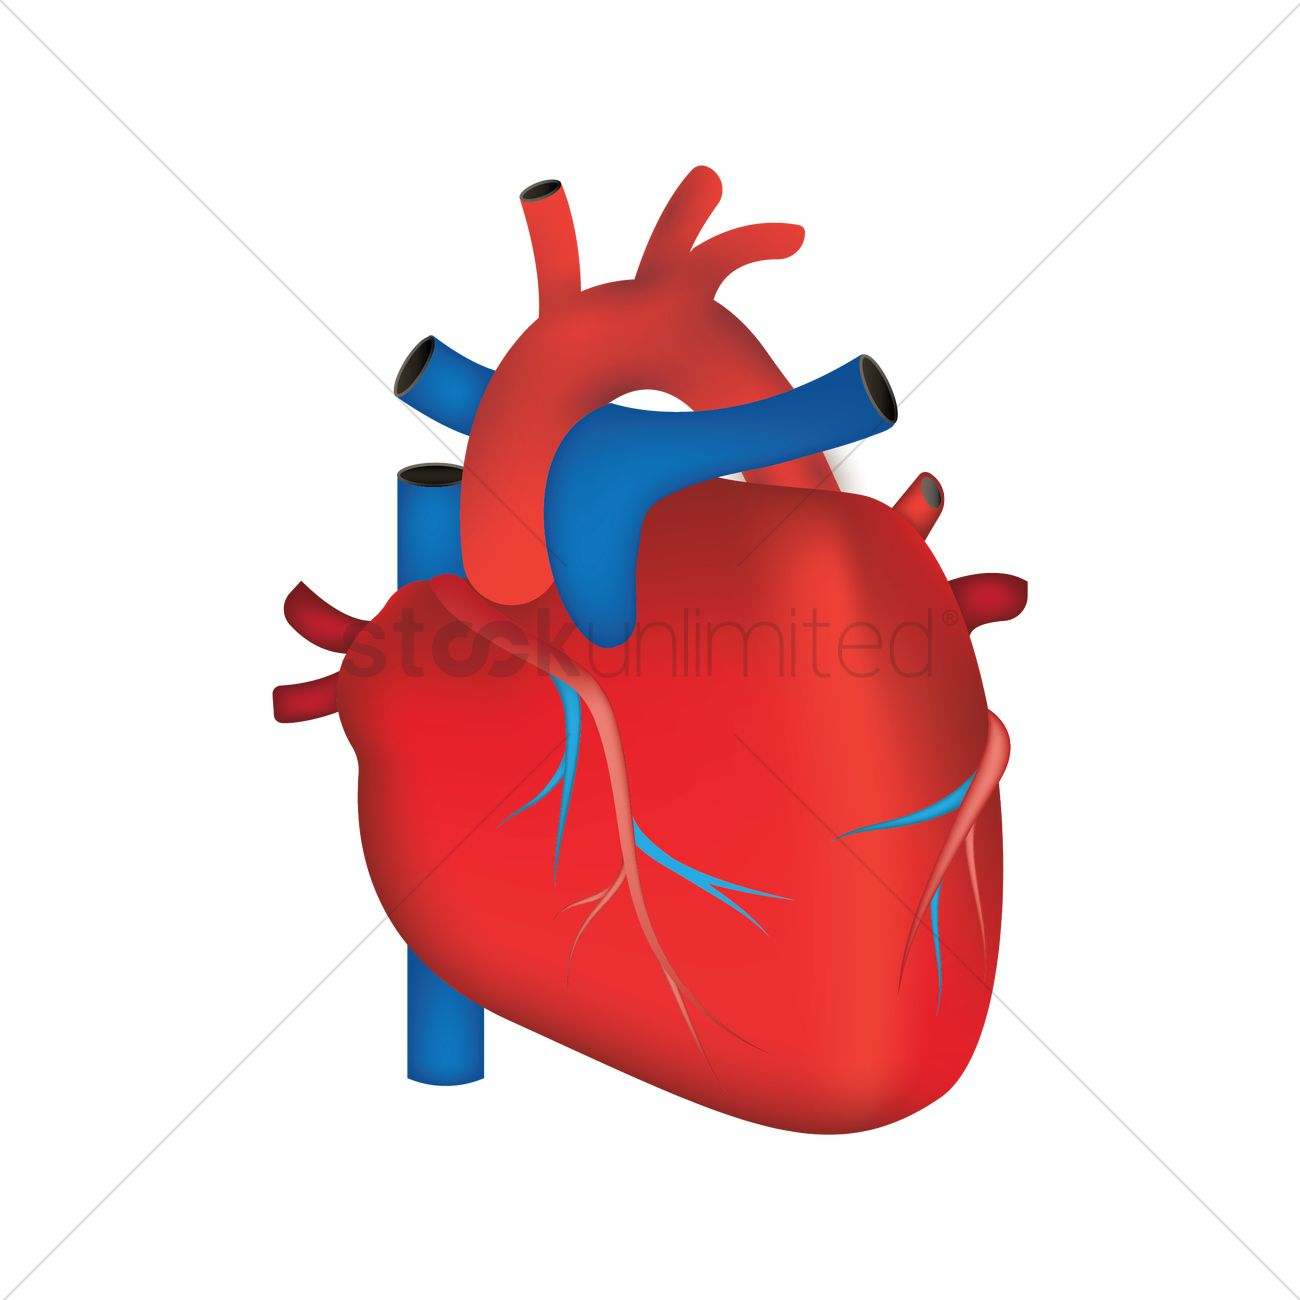 human heart vector image 1866359 stockunlimited rh stockunlimited com human heart vector drawing human heart vector free